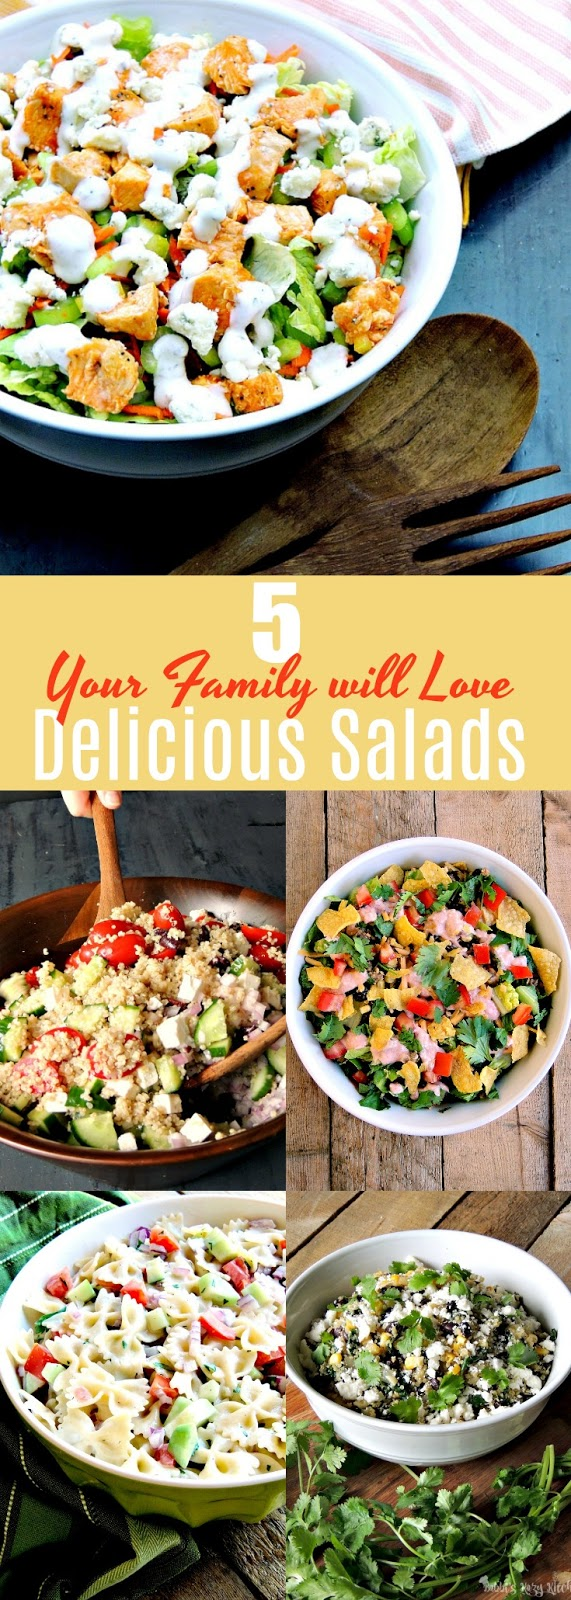 5 Amazing Salads Your Whole Family Will Love to Eat!